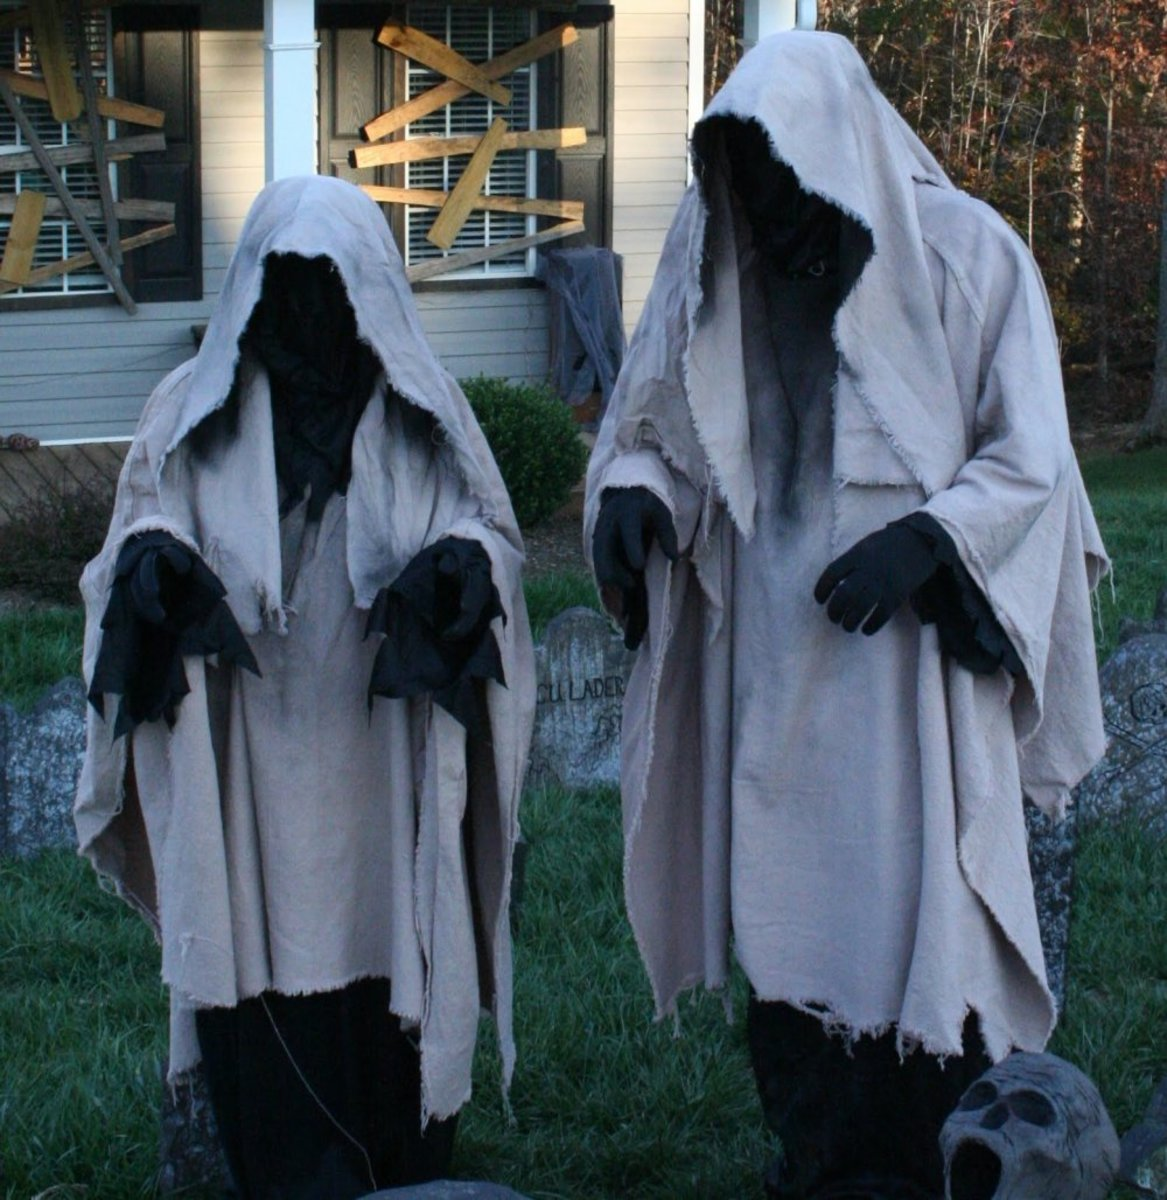 These may be typical of the very early Halloween costumes that were meant to frighten people, and they certainly do just that.